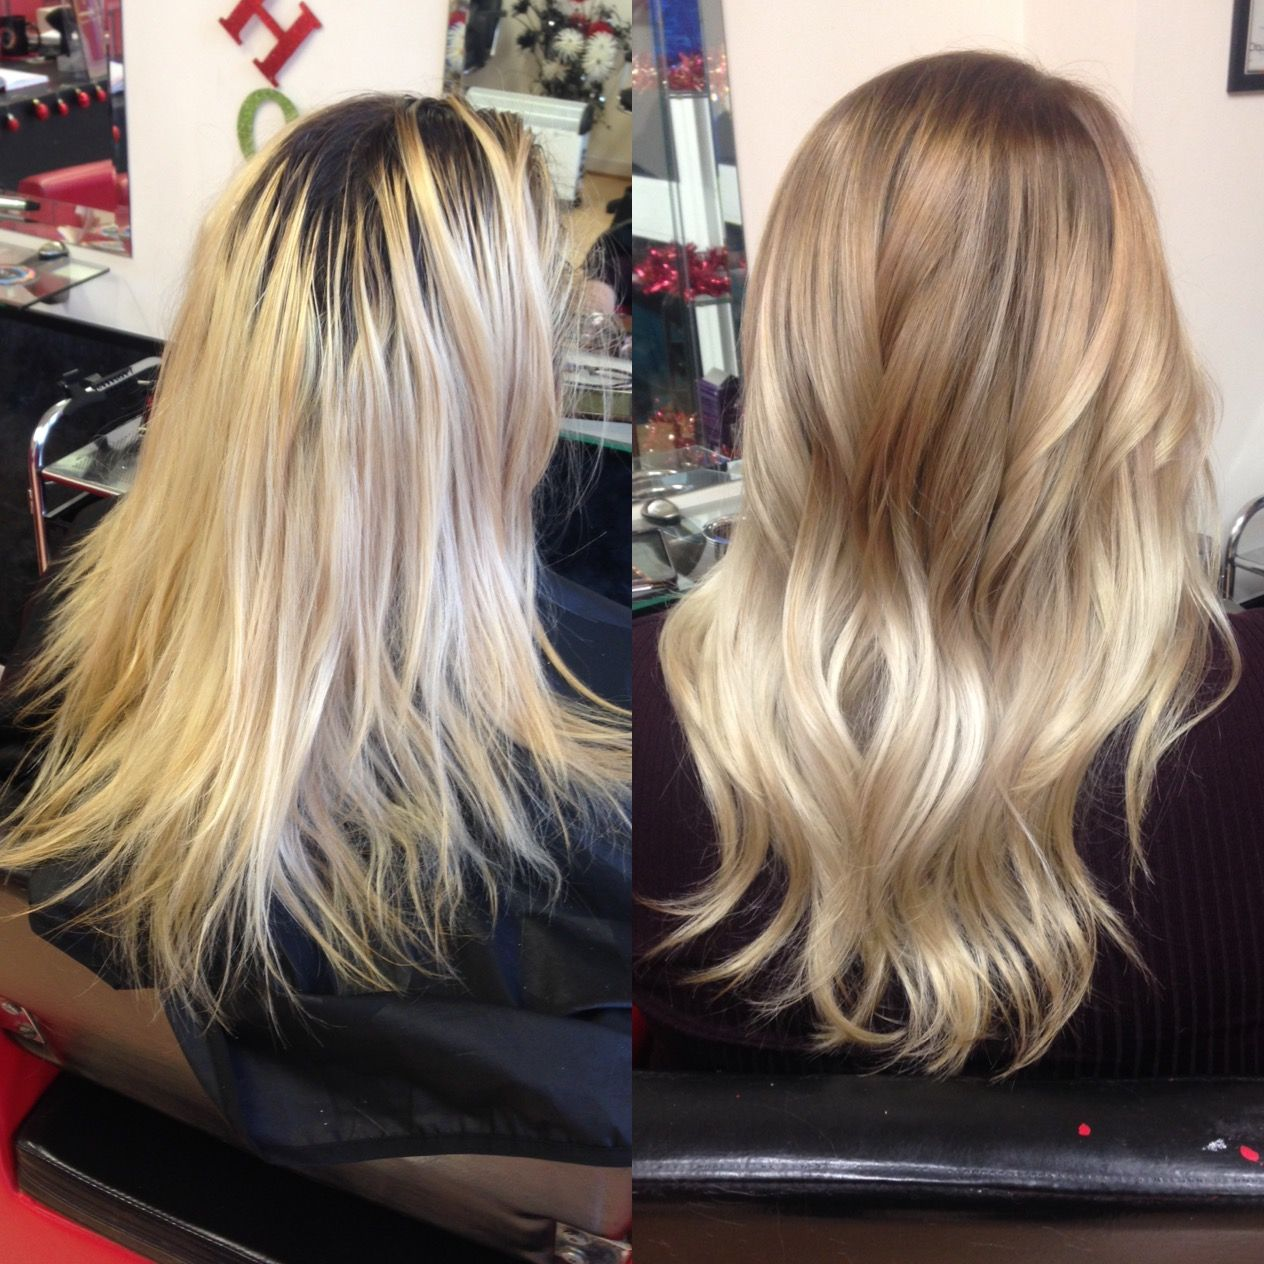 Incredible Before And After Of This Hair Transformation From Grown Out Highlights With Dark Roo Blonde Hair Transformations Hair Transformation Blonde Balayage